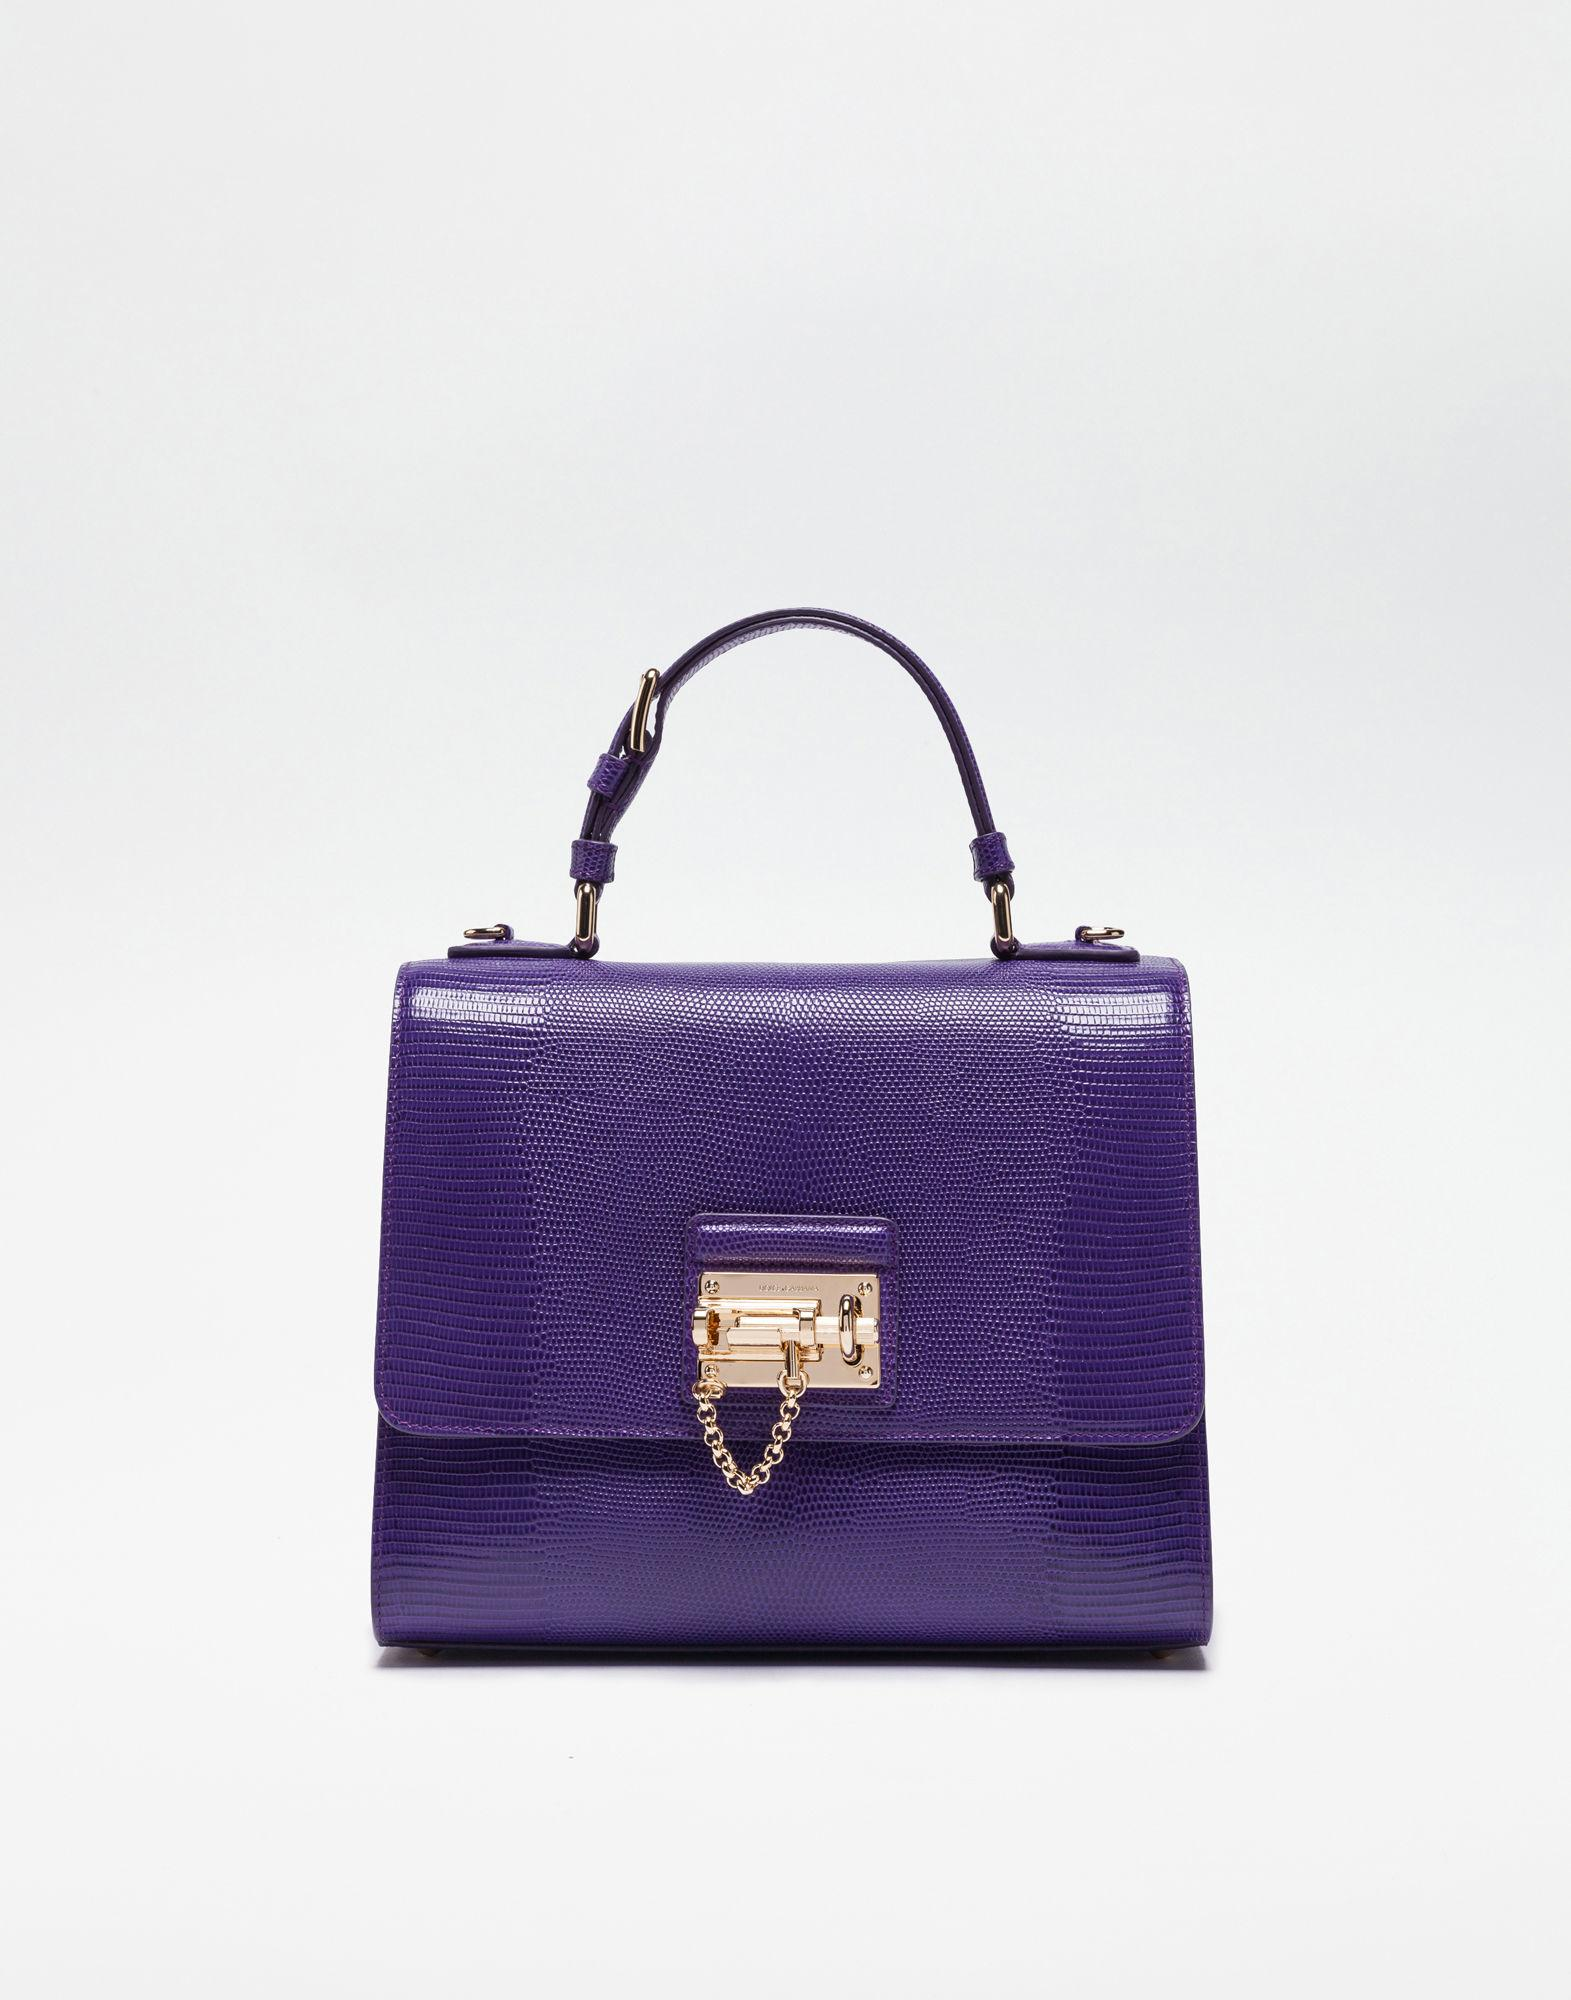 Lyst - Dolce   Gabbana Leather Monica Bag in Purple e5cdd8f7d733f